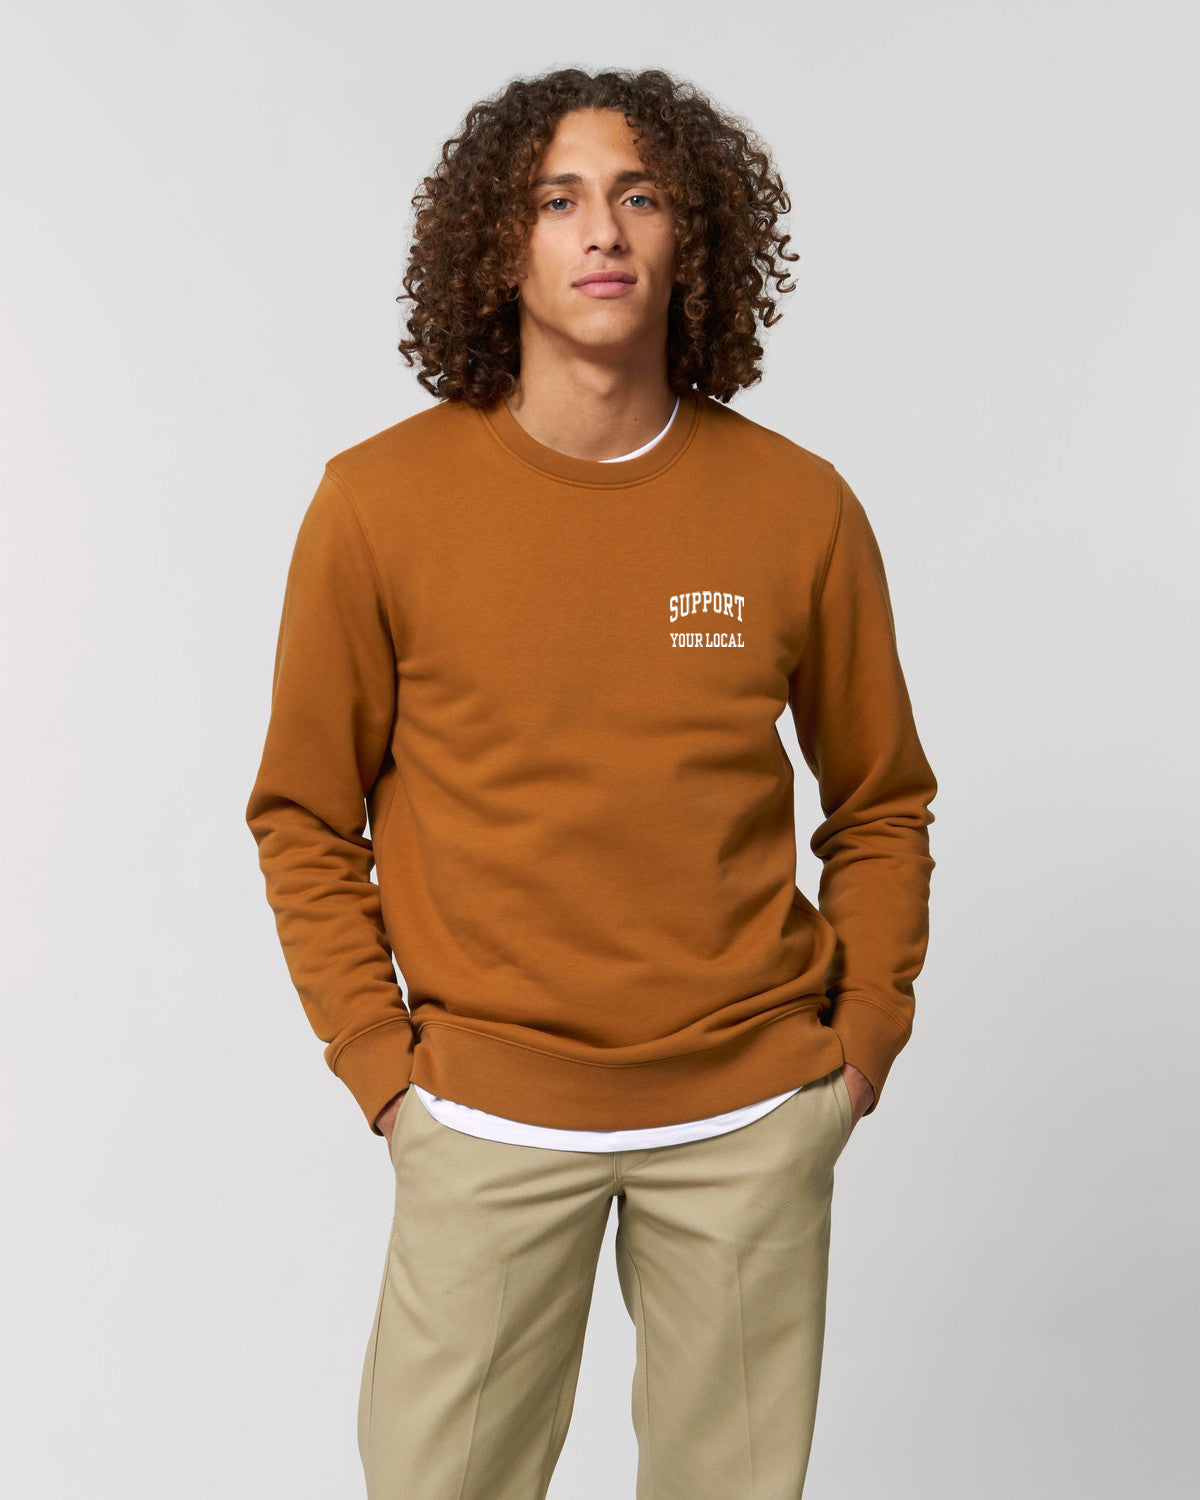 SUPPORT YOUR LOCAL mens sweatshirt